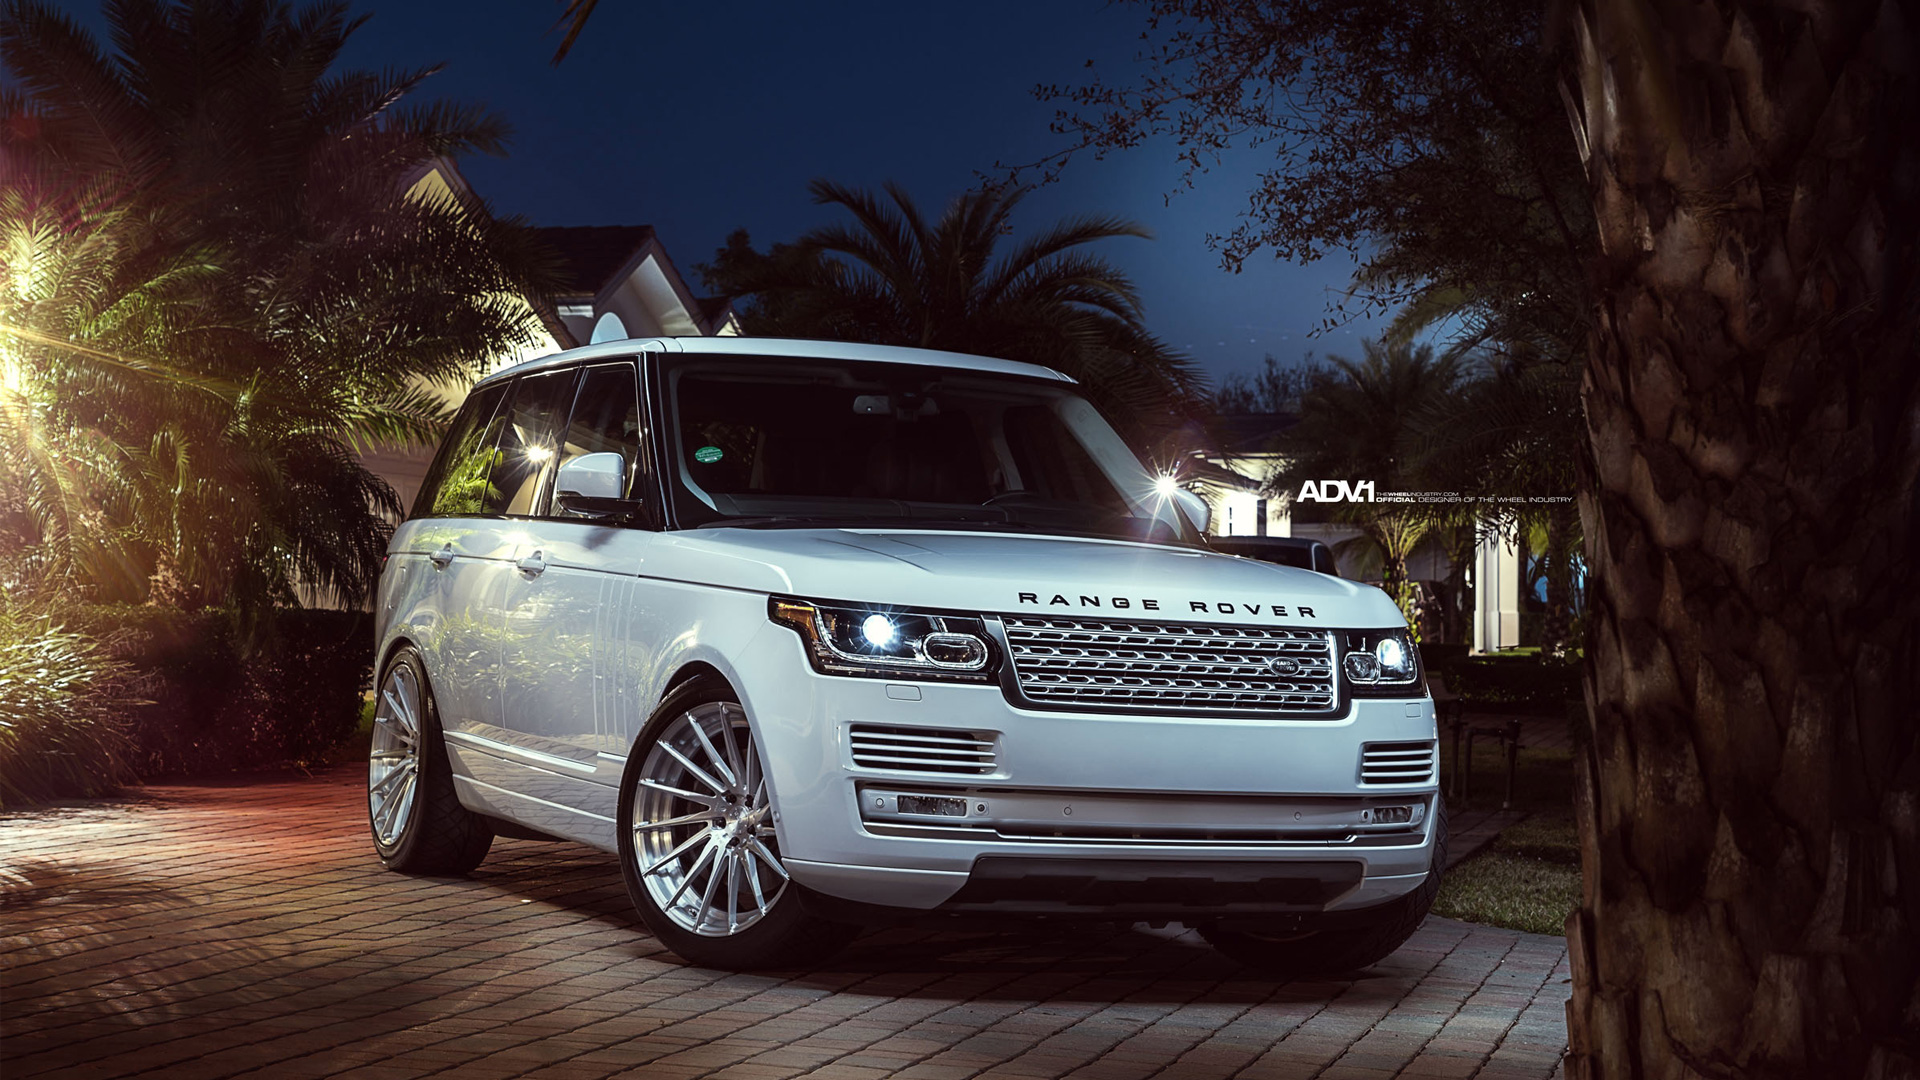 Land Rover Car Wallpaper